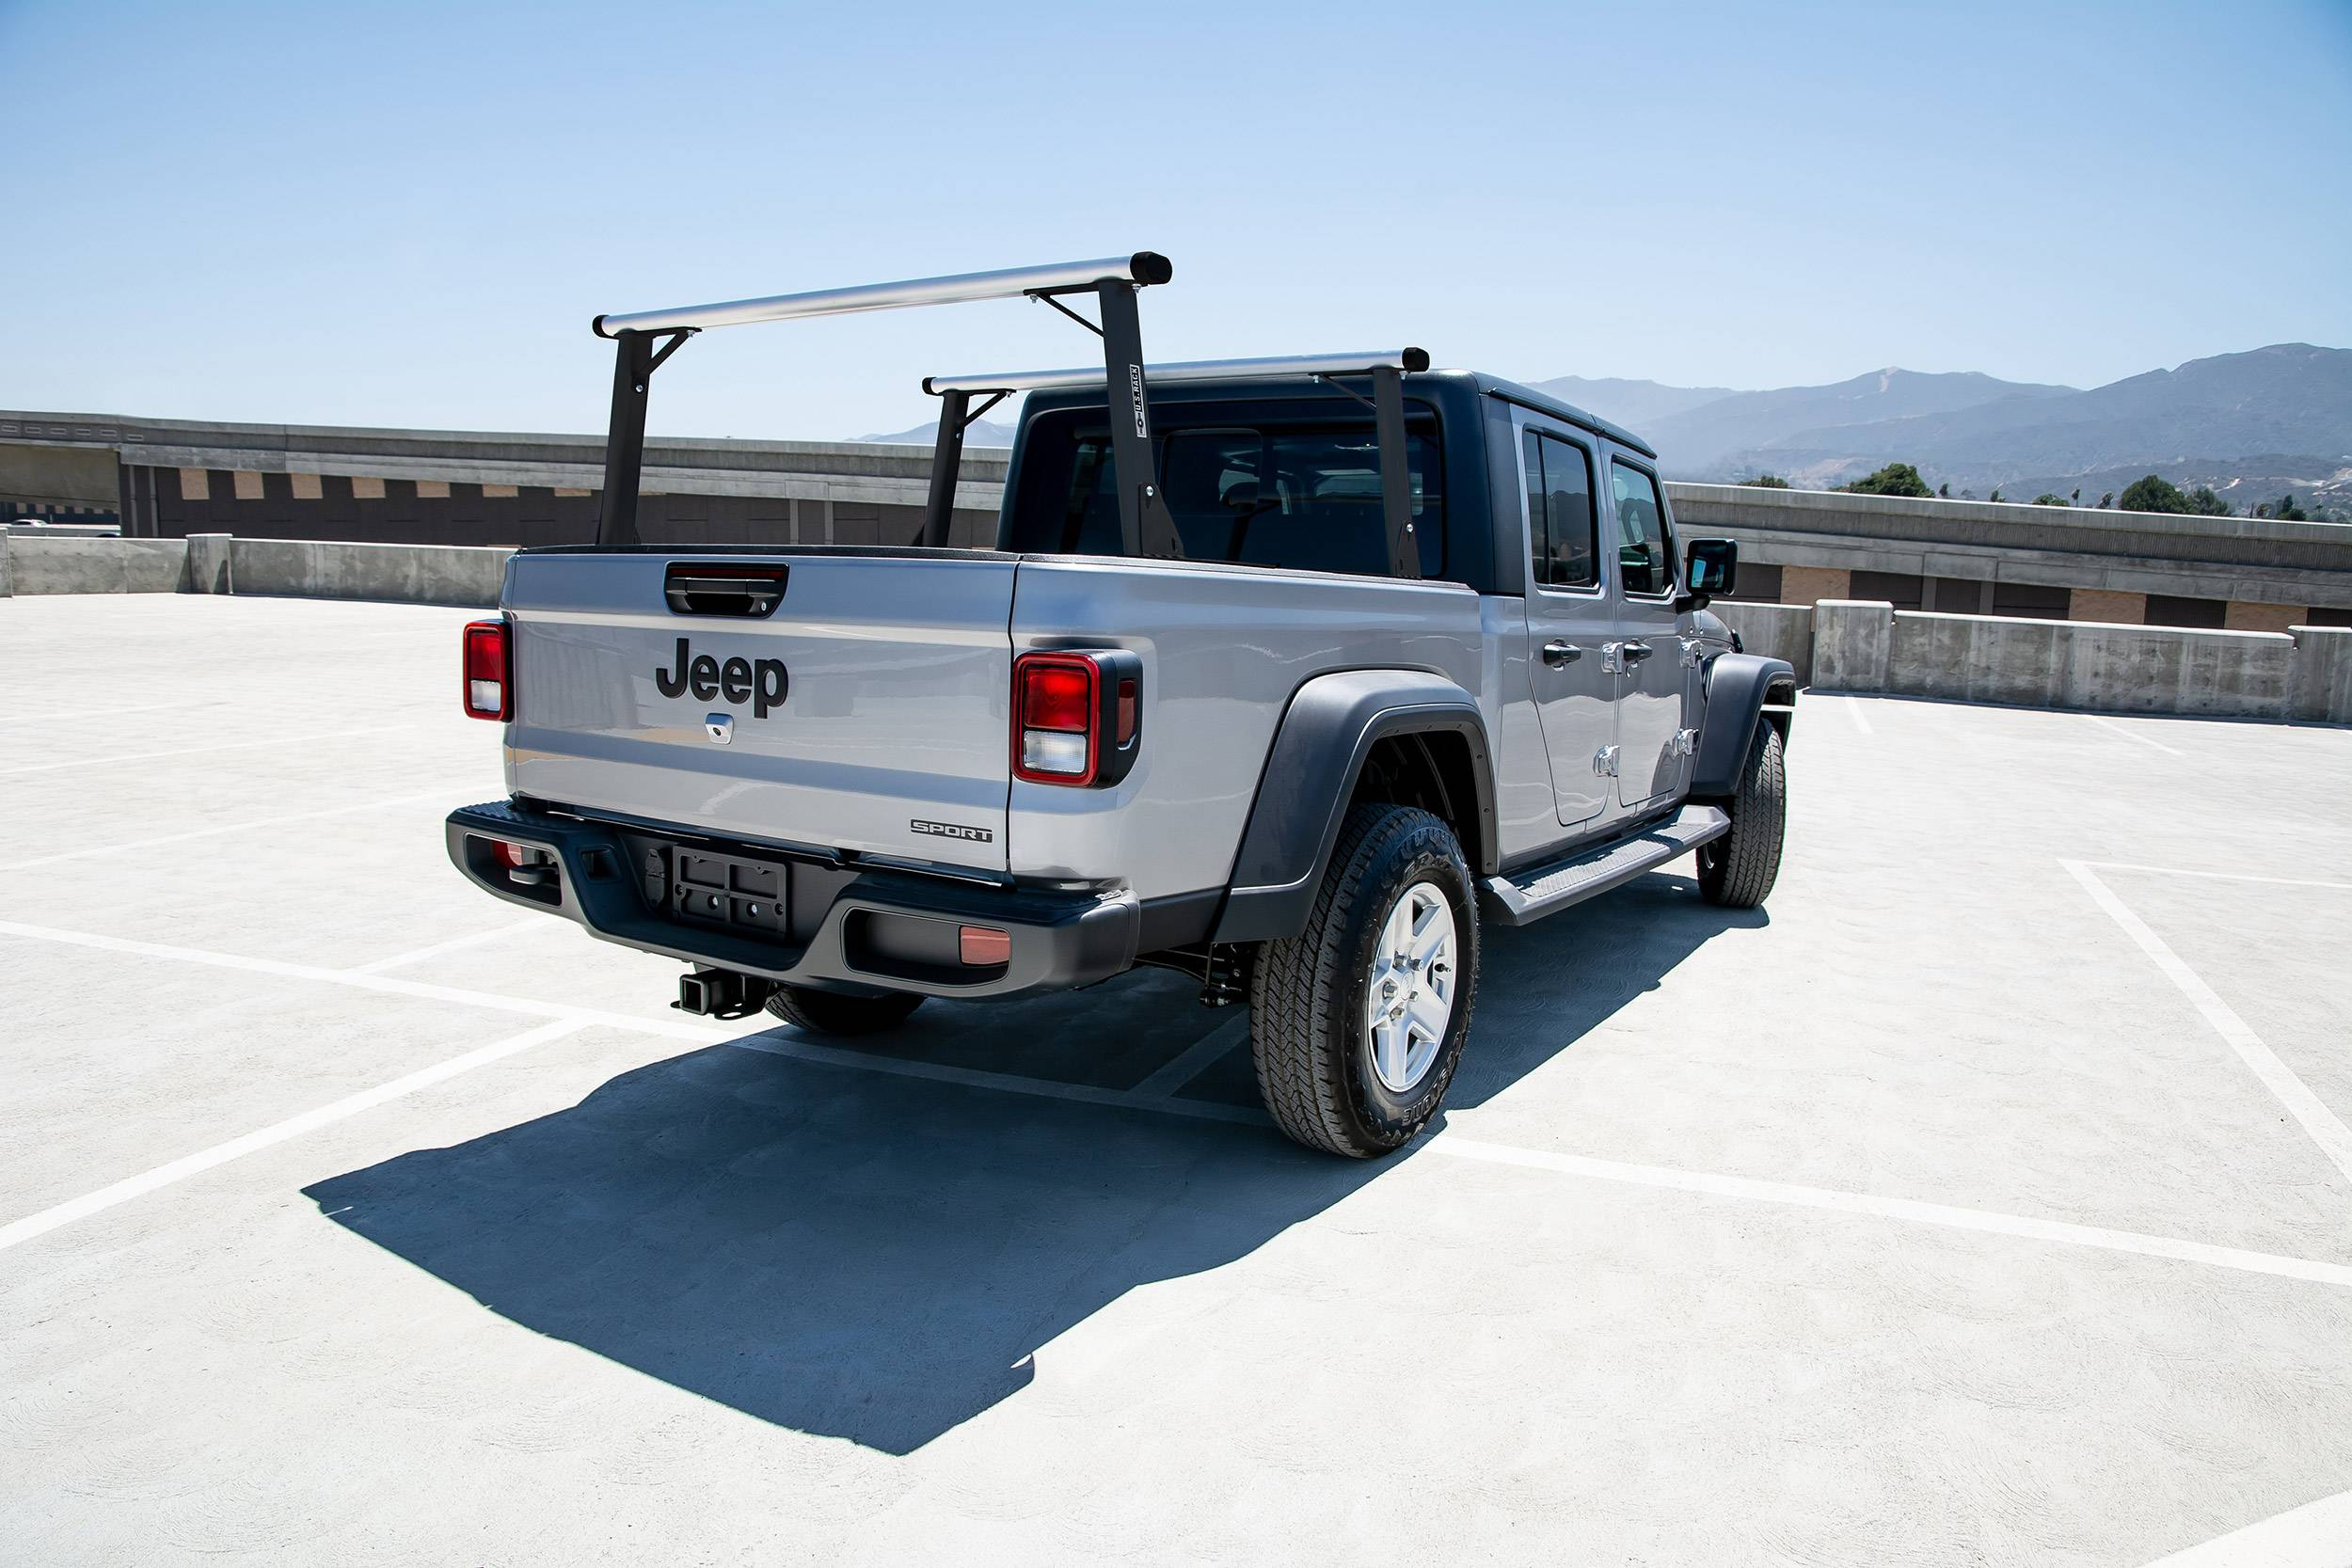 2020 Jeep Gladiator Clipper Truck Rack, Fleetside, Track System, Cab Height, Brushed Cross Bar, Black Legs and Base - PN #82240252